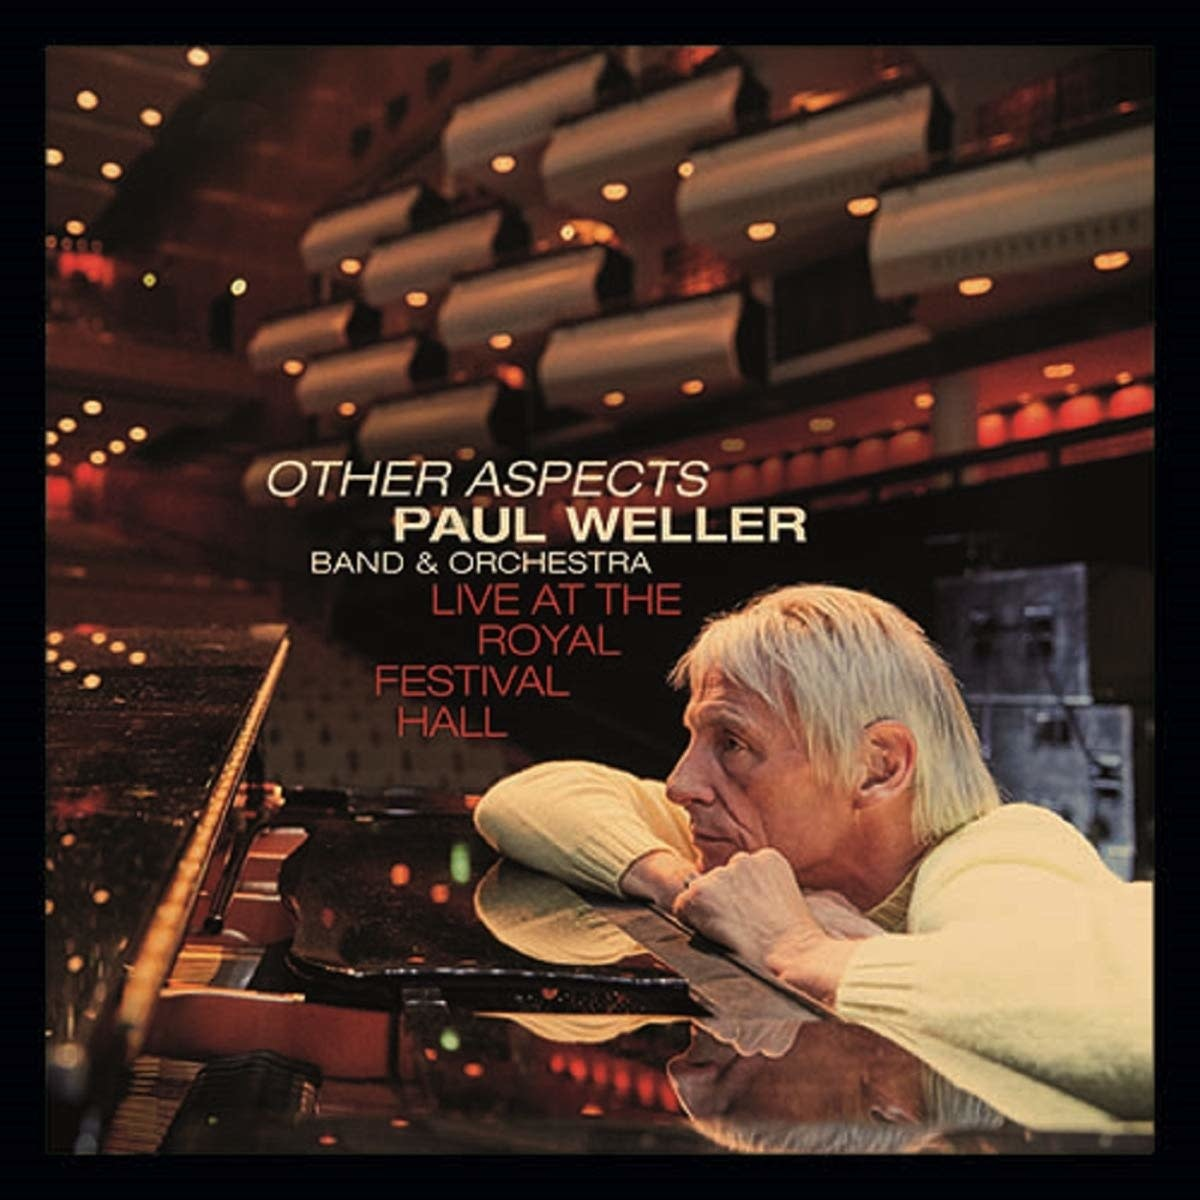 Paul Weller ‎– Other Aspects (Live At The Royal Festival Hall)